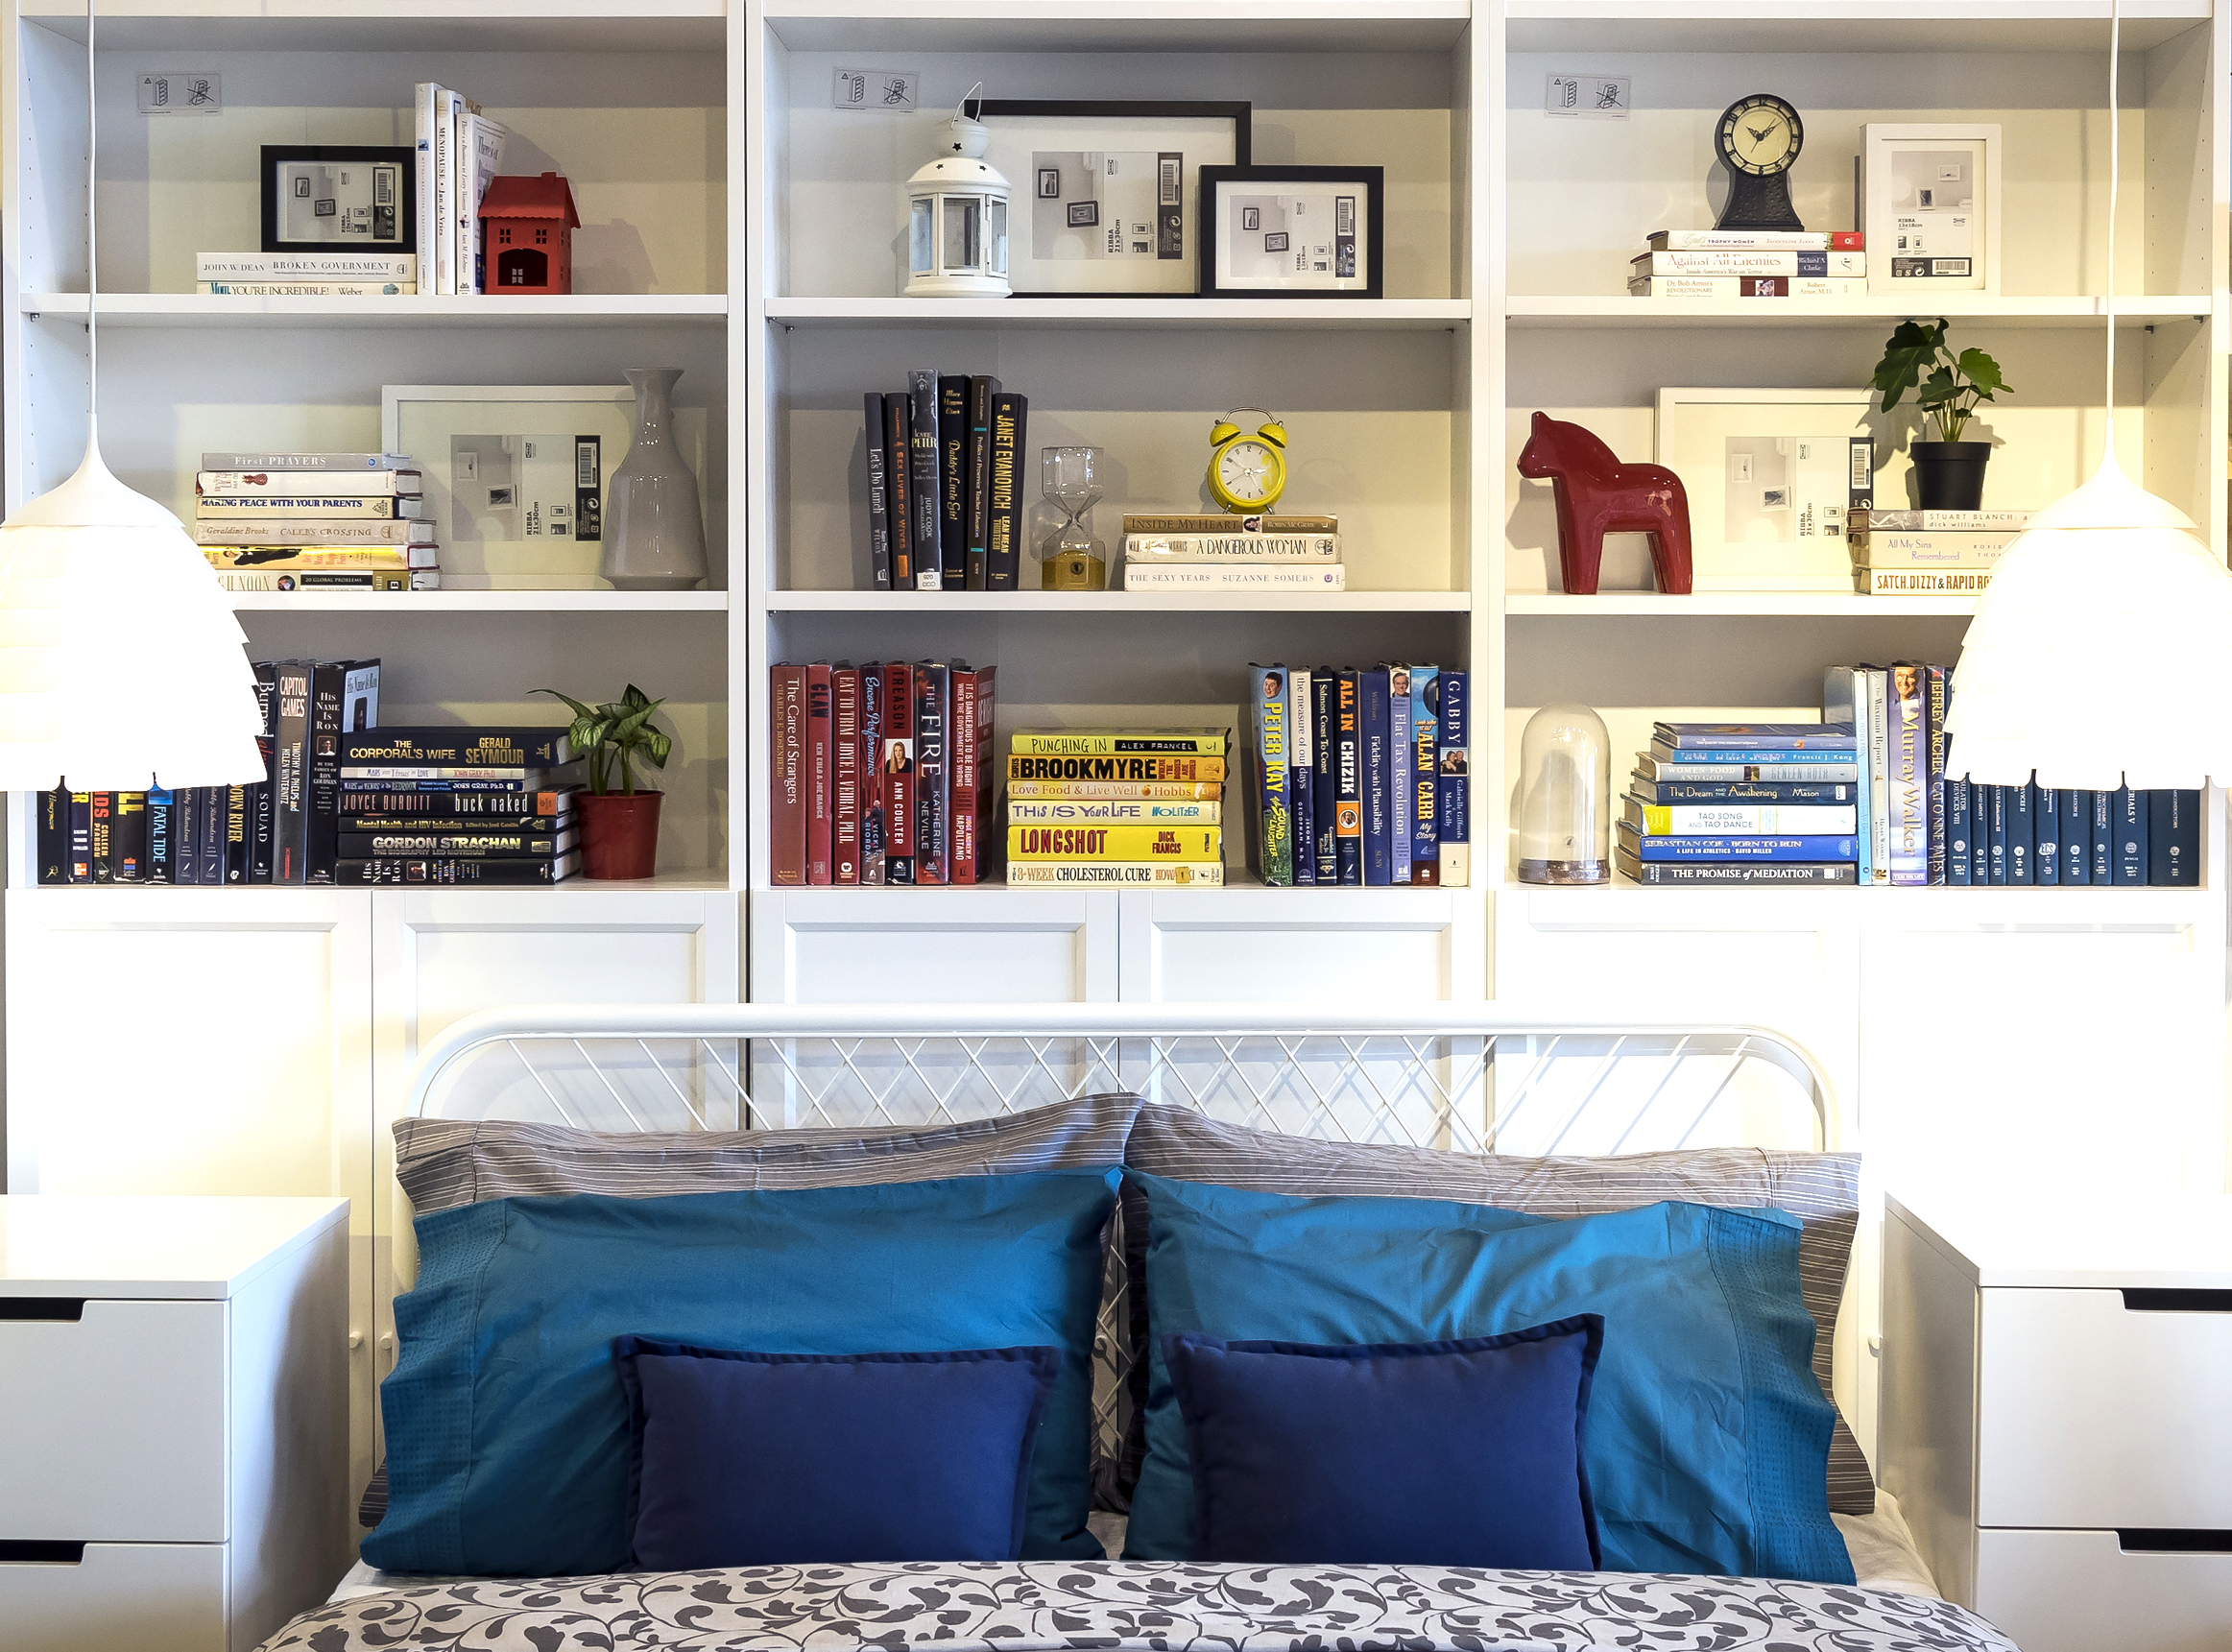 Well decorated Billy bookshelves behind Ikea bed with blue pillows